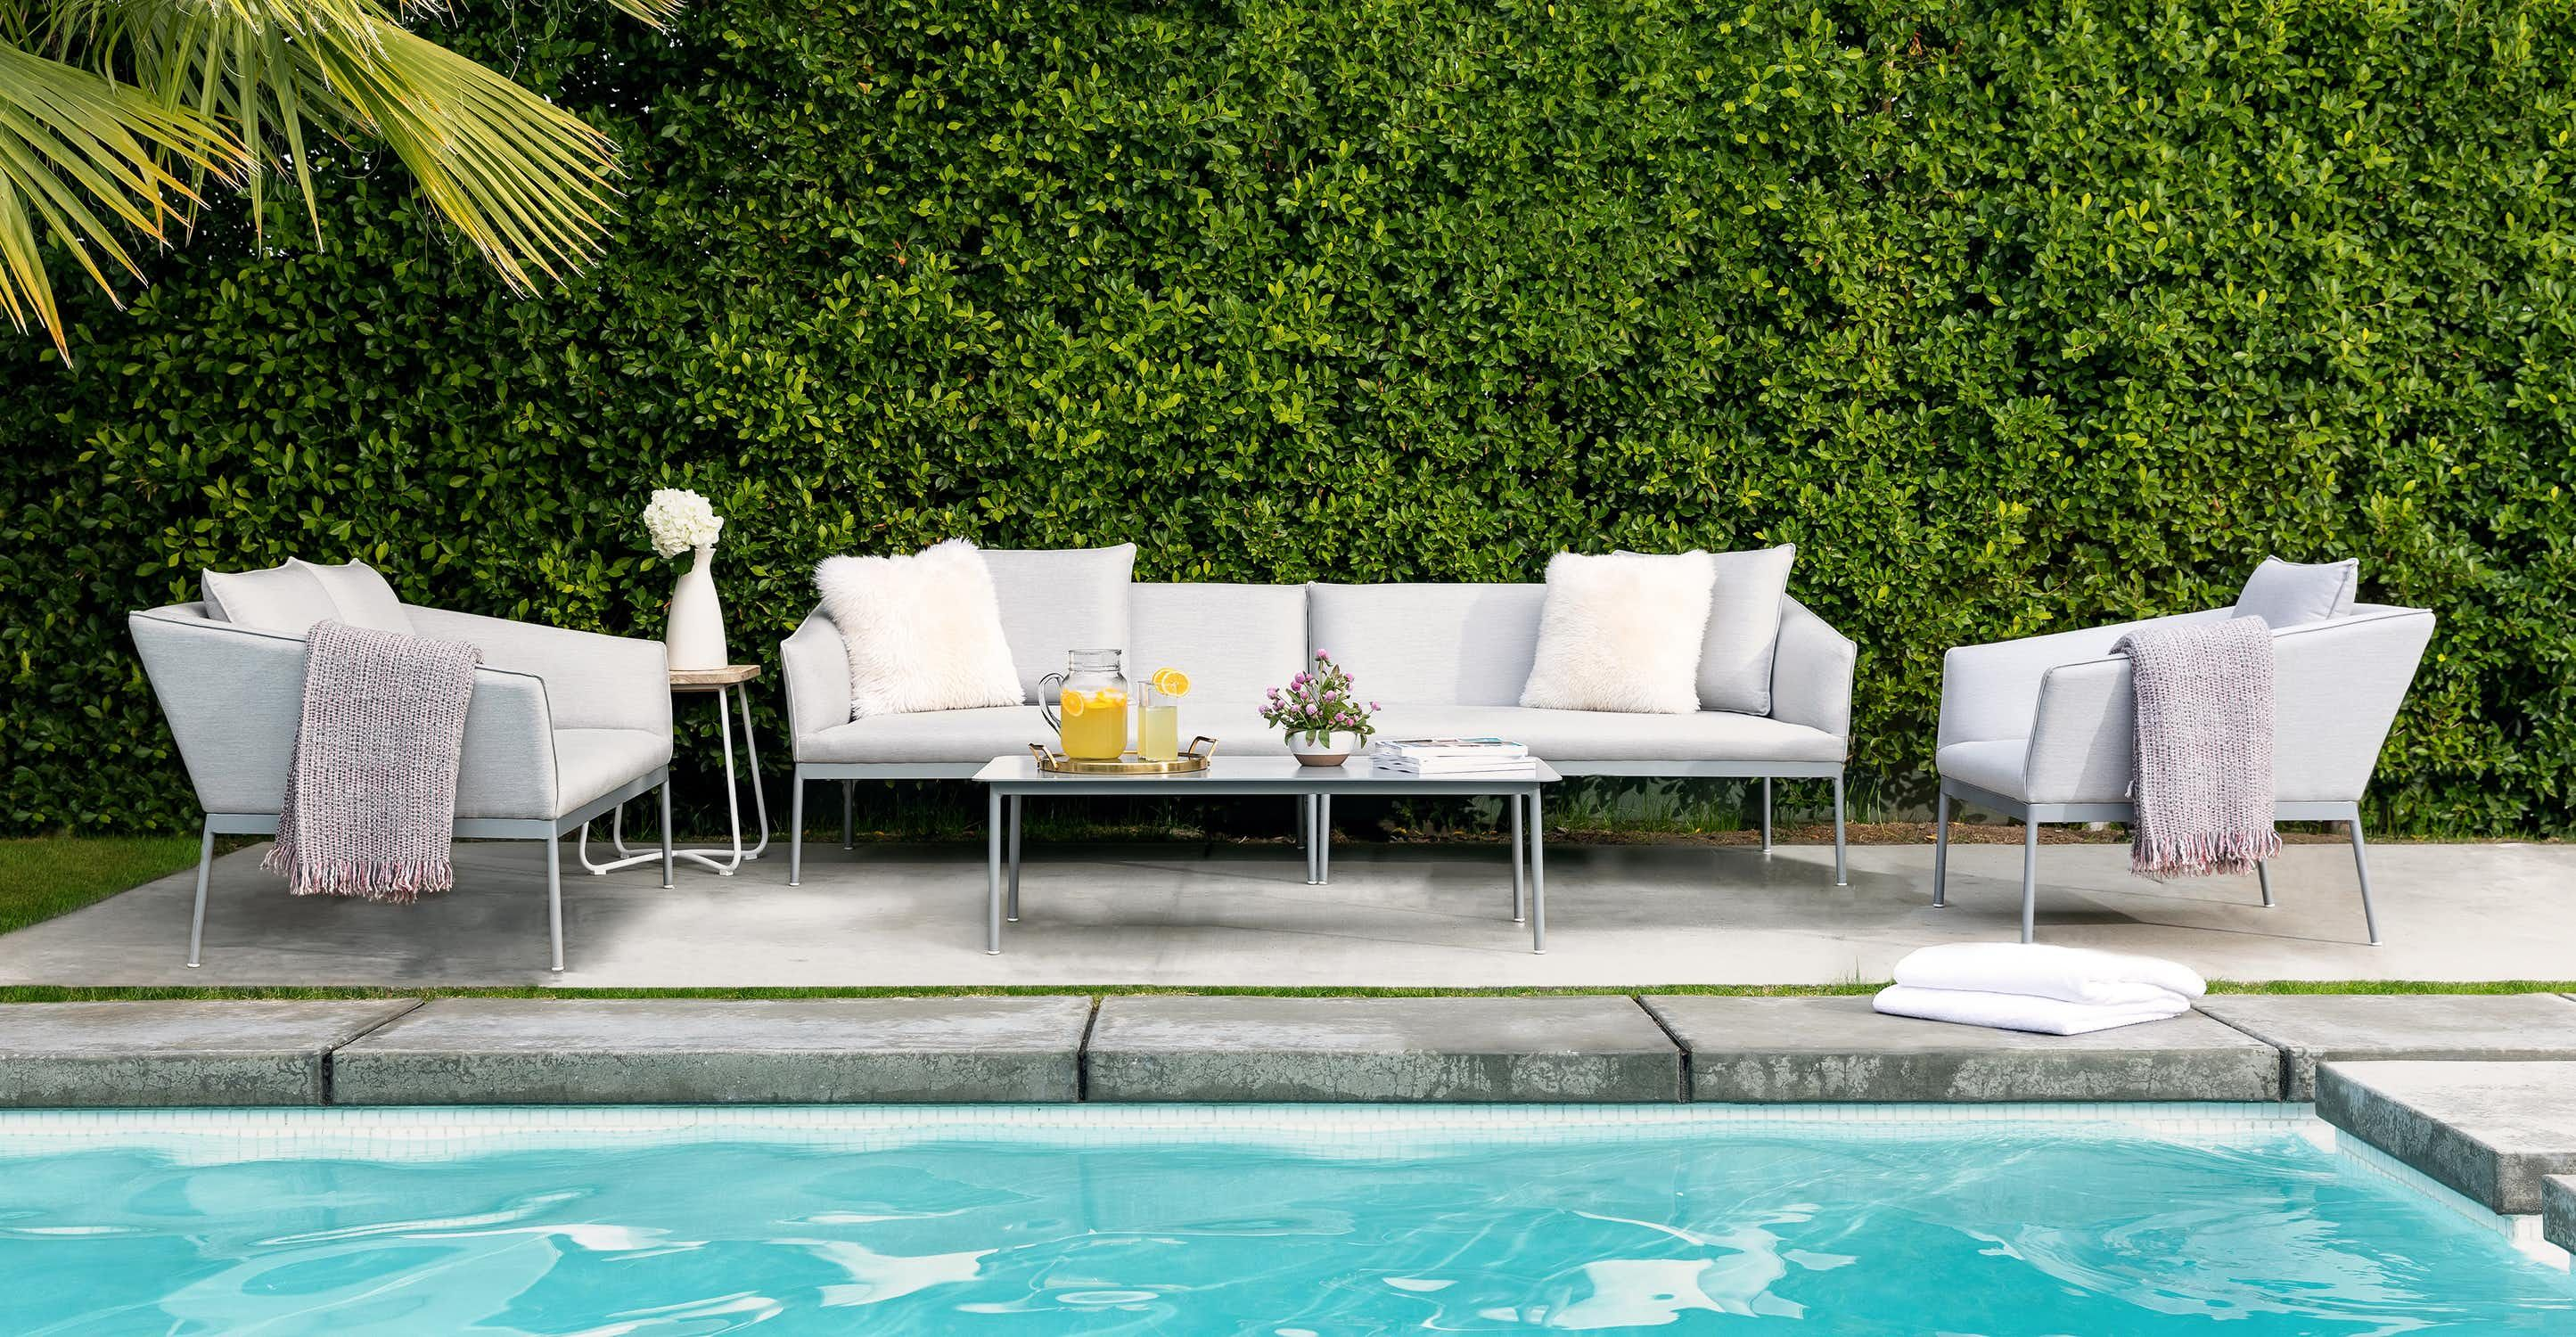 Palo Paloma Gray Sectional Article Modern Outdoor Lounge Chair Modern Outdoor Sofas Lounge Chair Outdoor